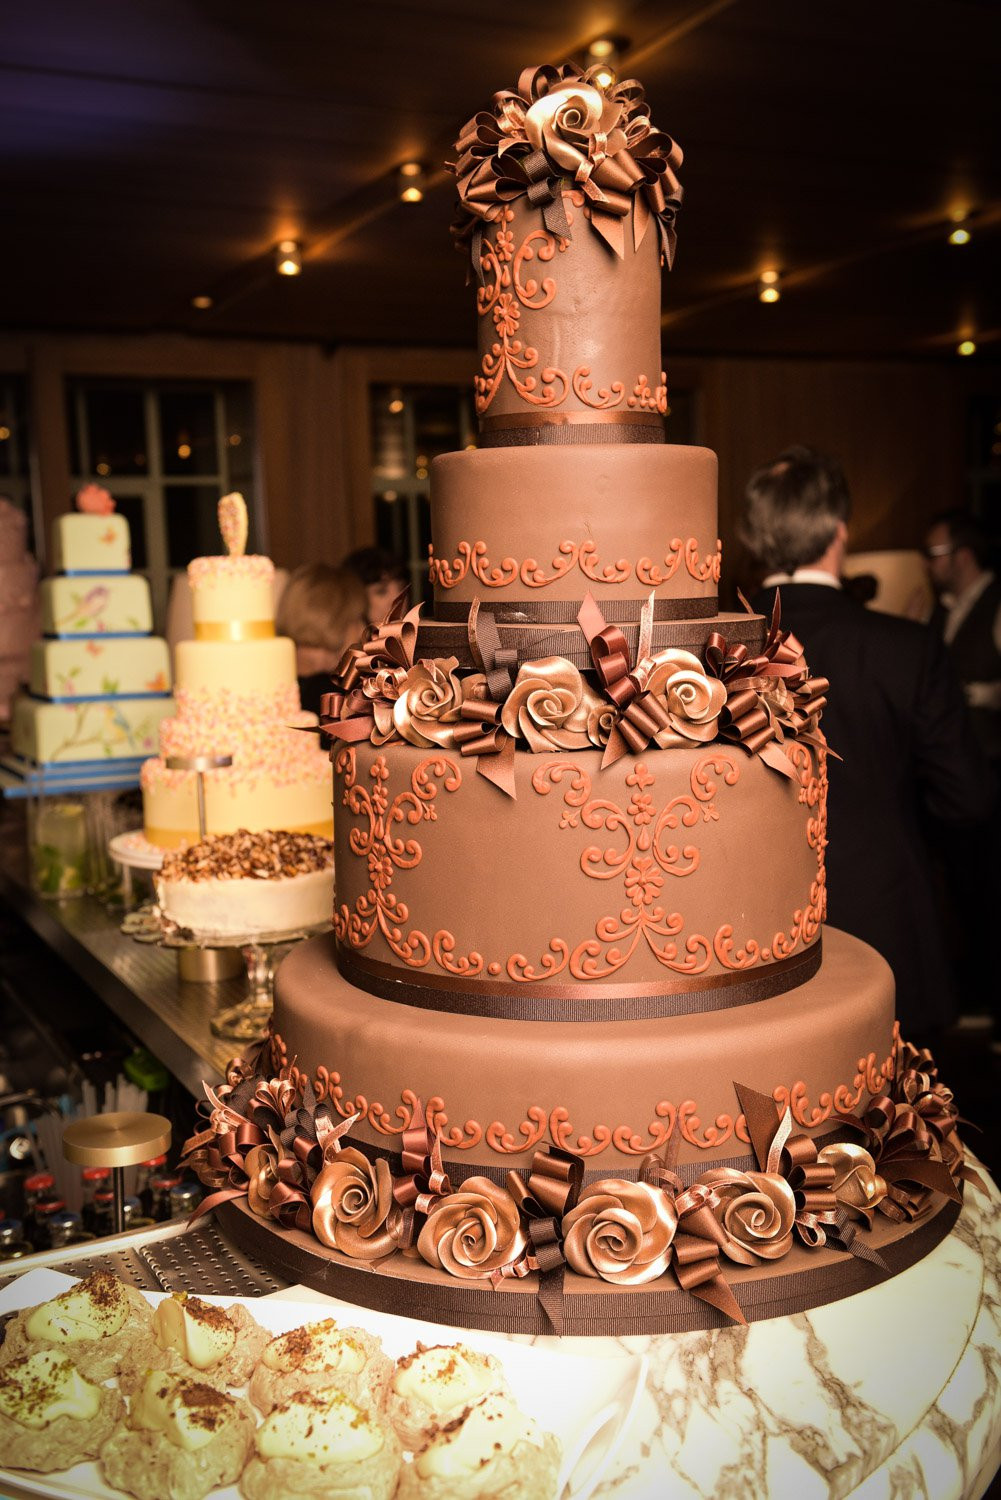 Expensive Wedding Cakes  9 Most Extravagant And Expensive Celebrity Wedding Cakes